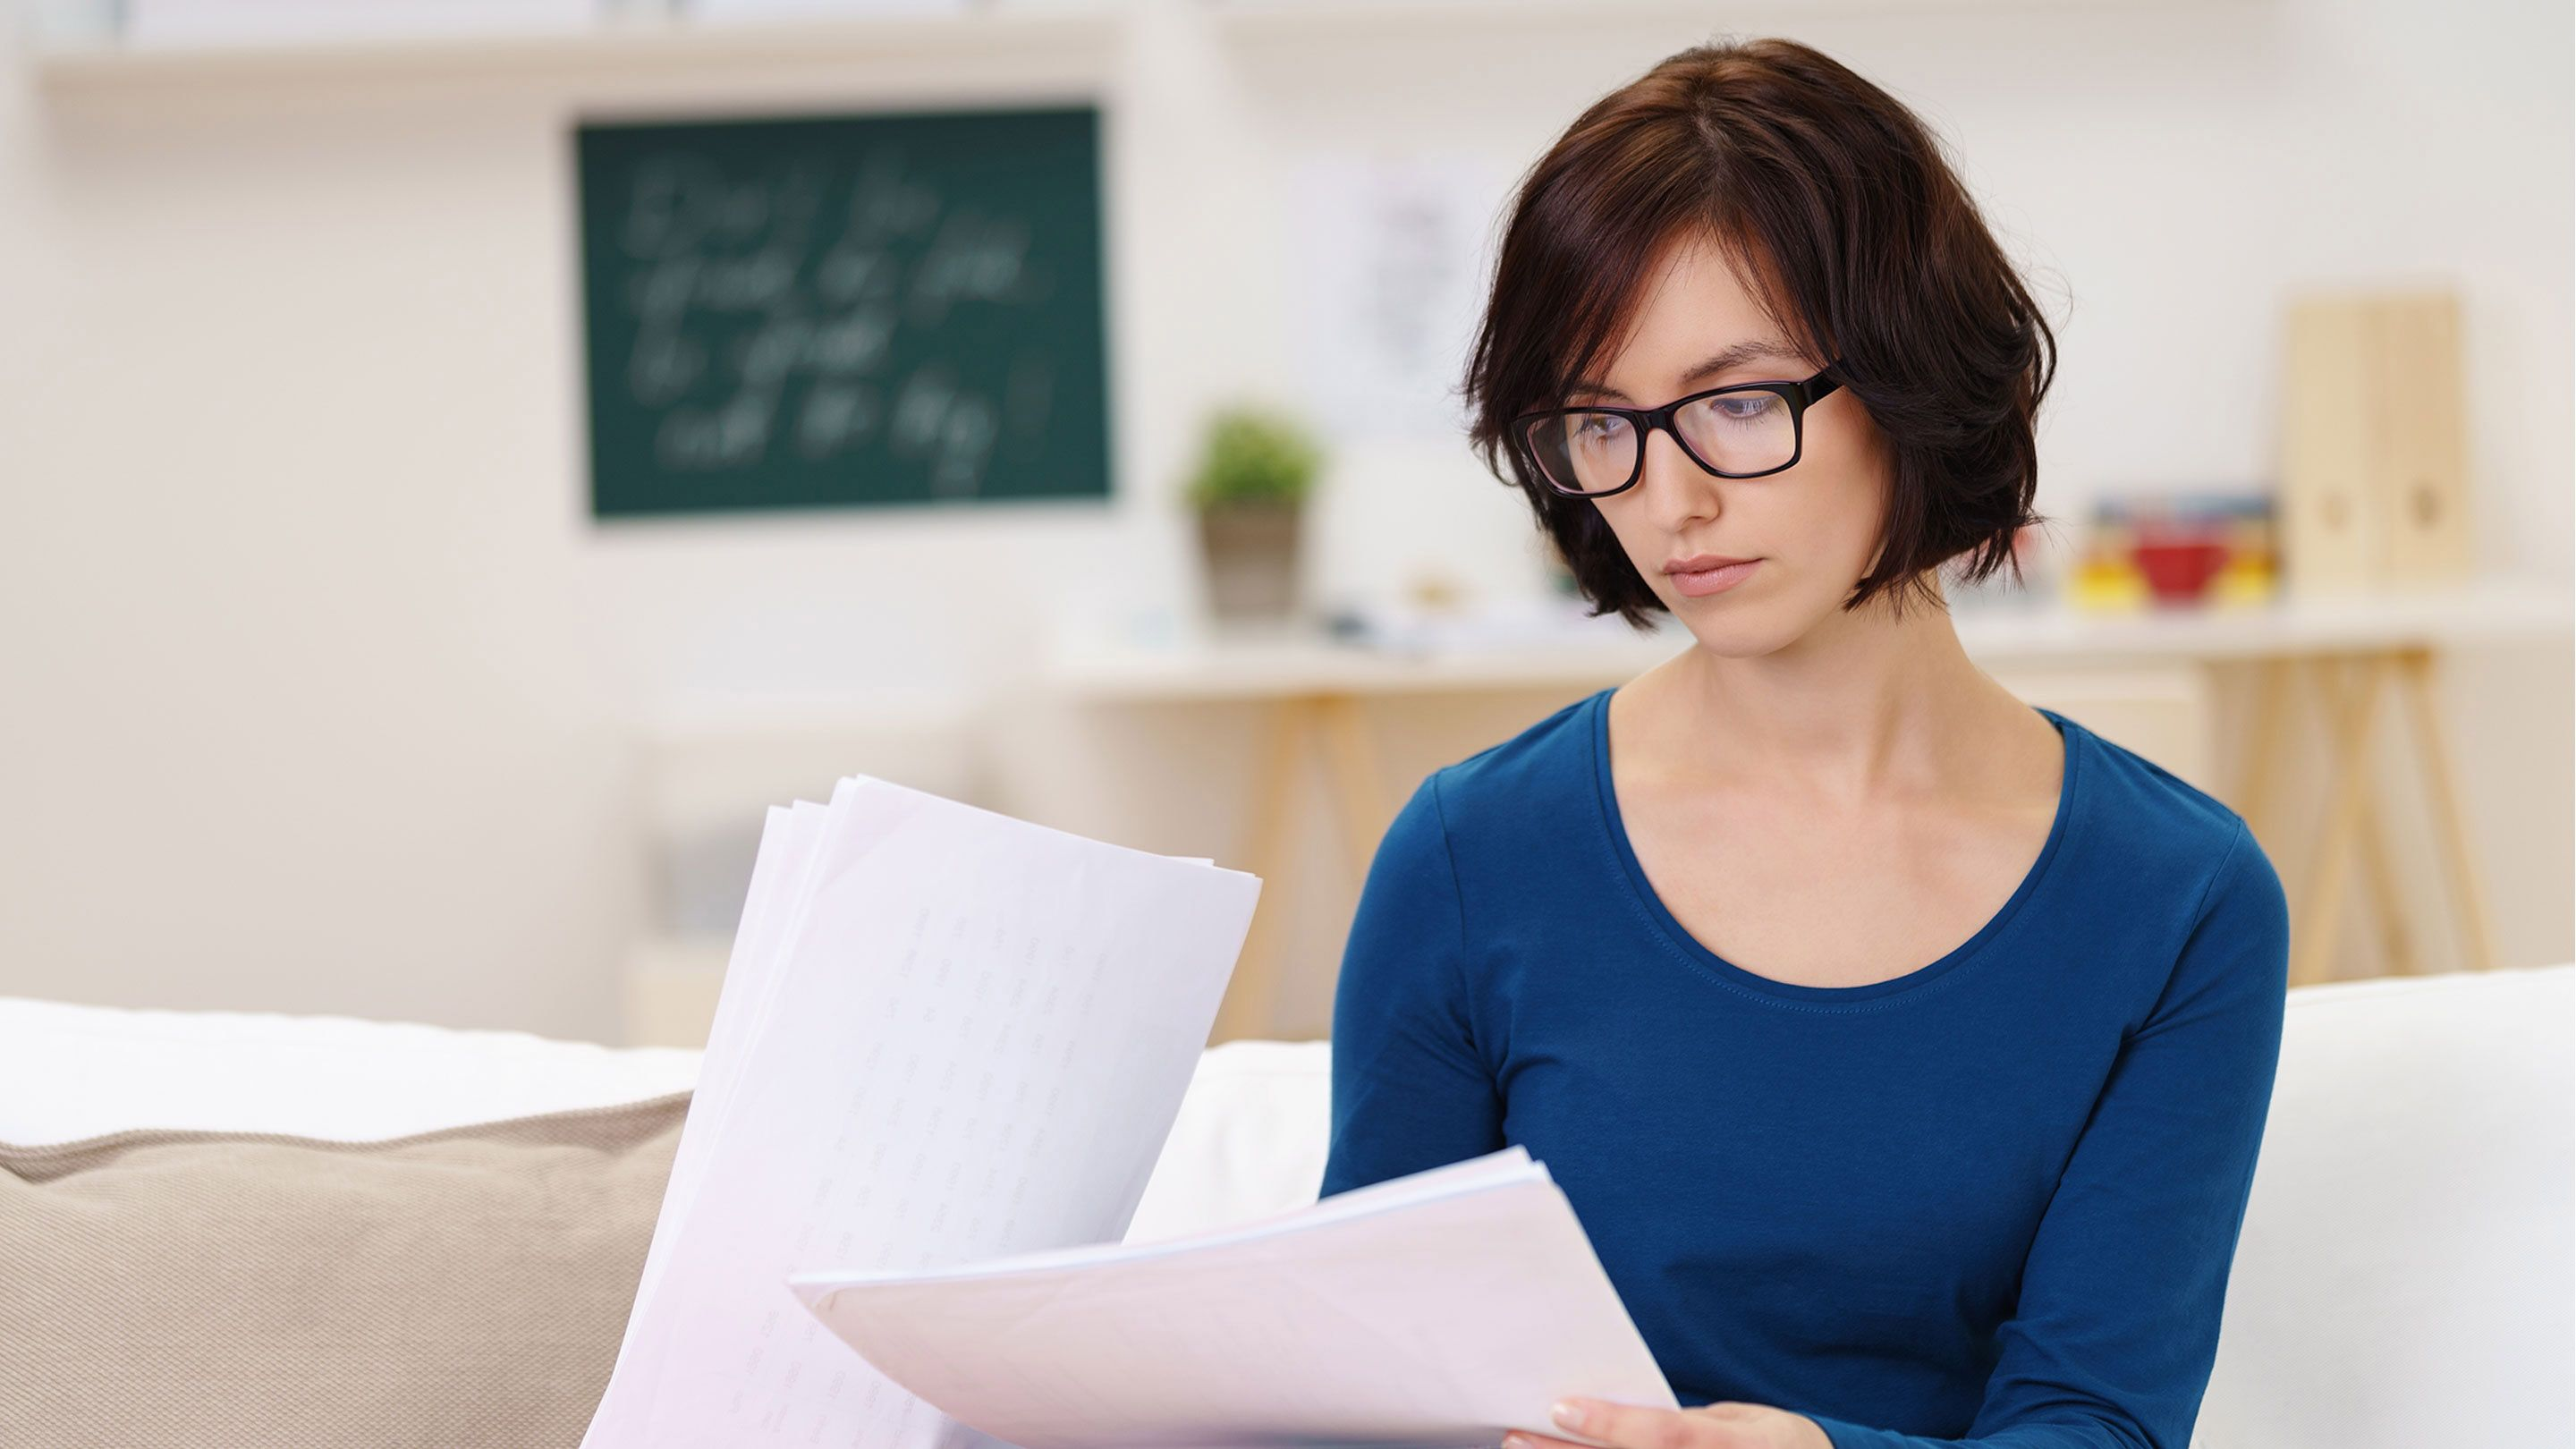 A female teacher in a blue shirt and glasses is sitting in a classroom alone, looking at papers.